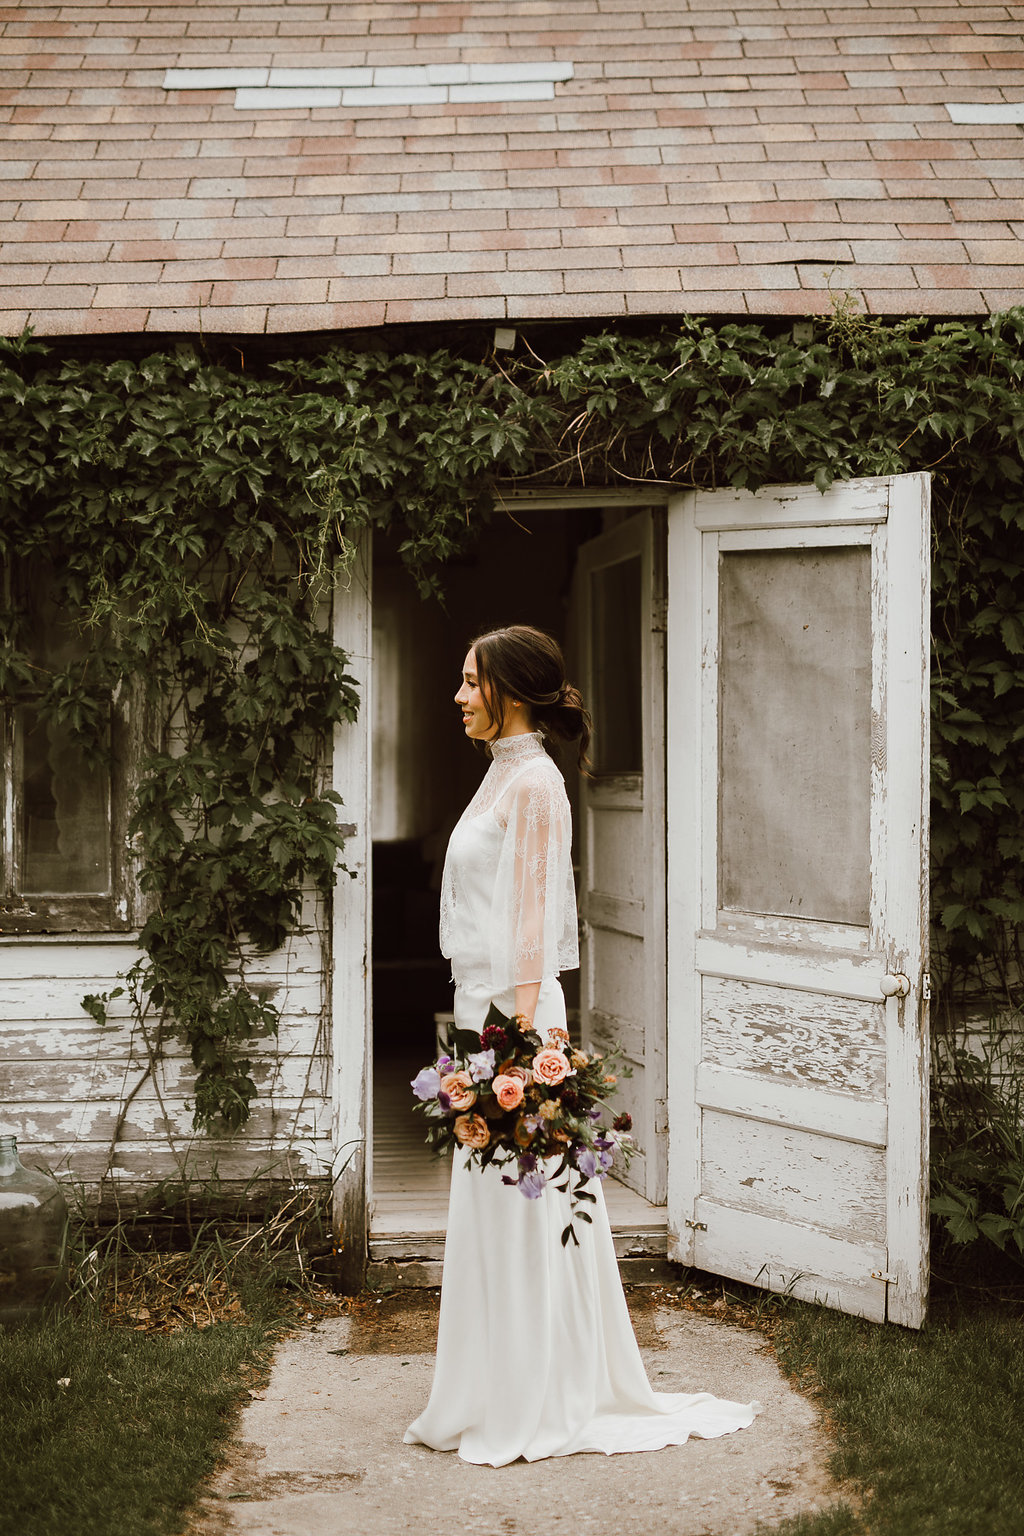 Stylish, Organic Wedding at Cielo's Garden - Winnipeg's Best Wedding Florist